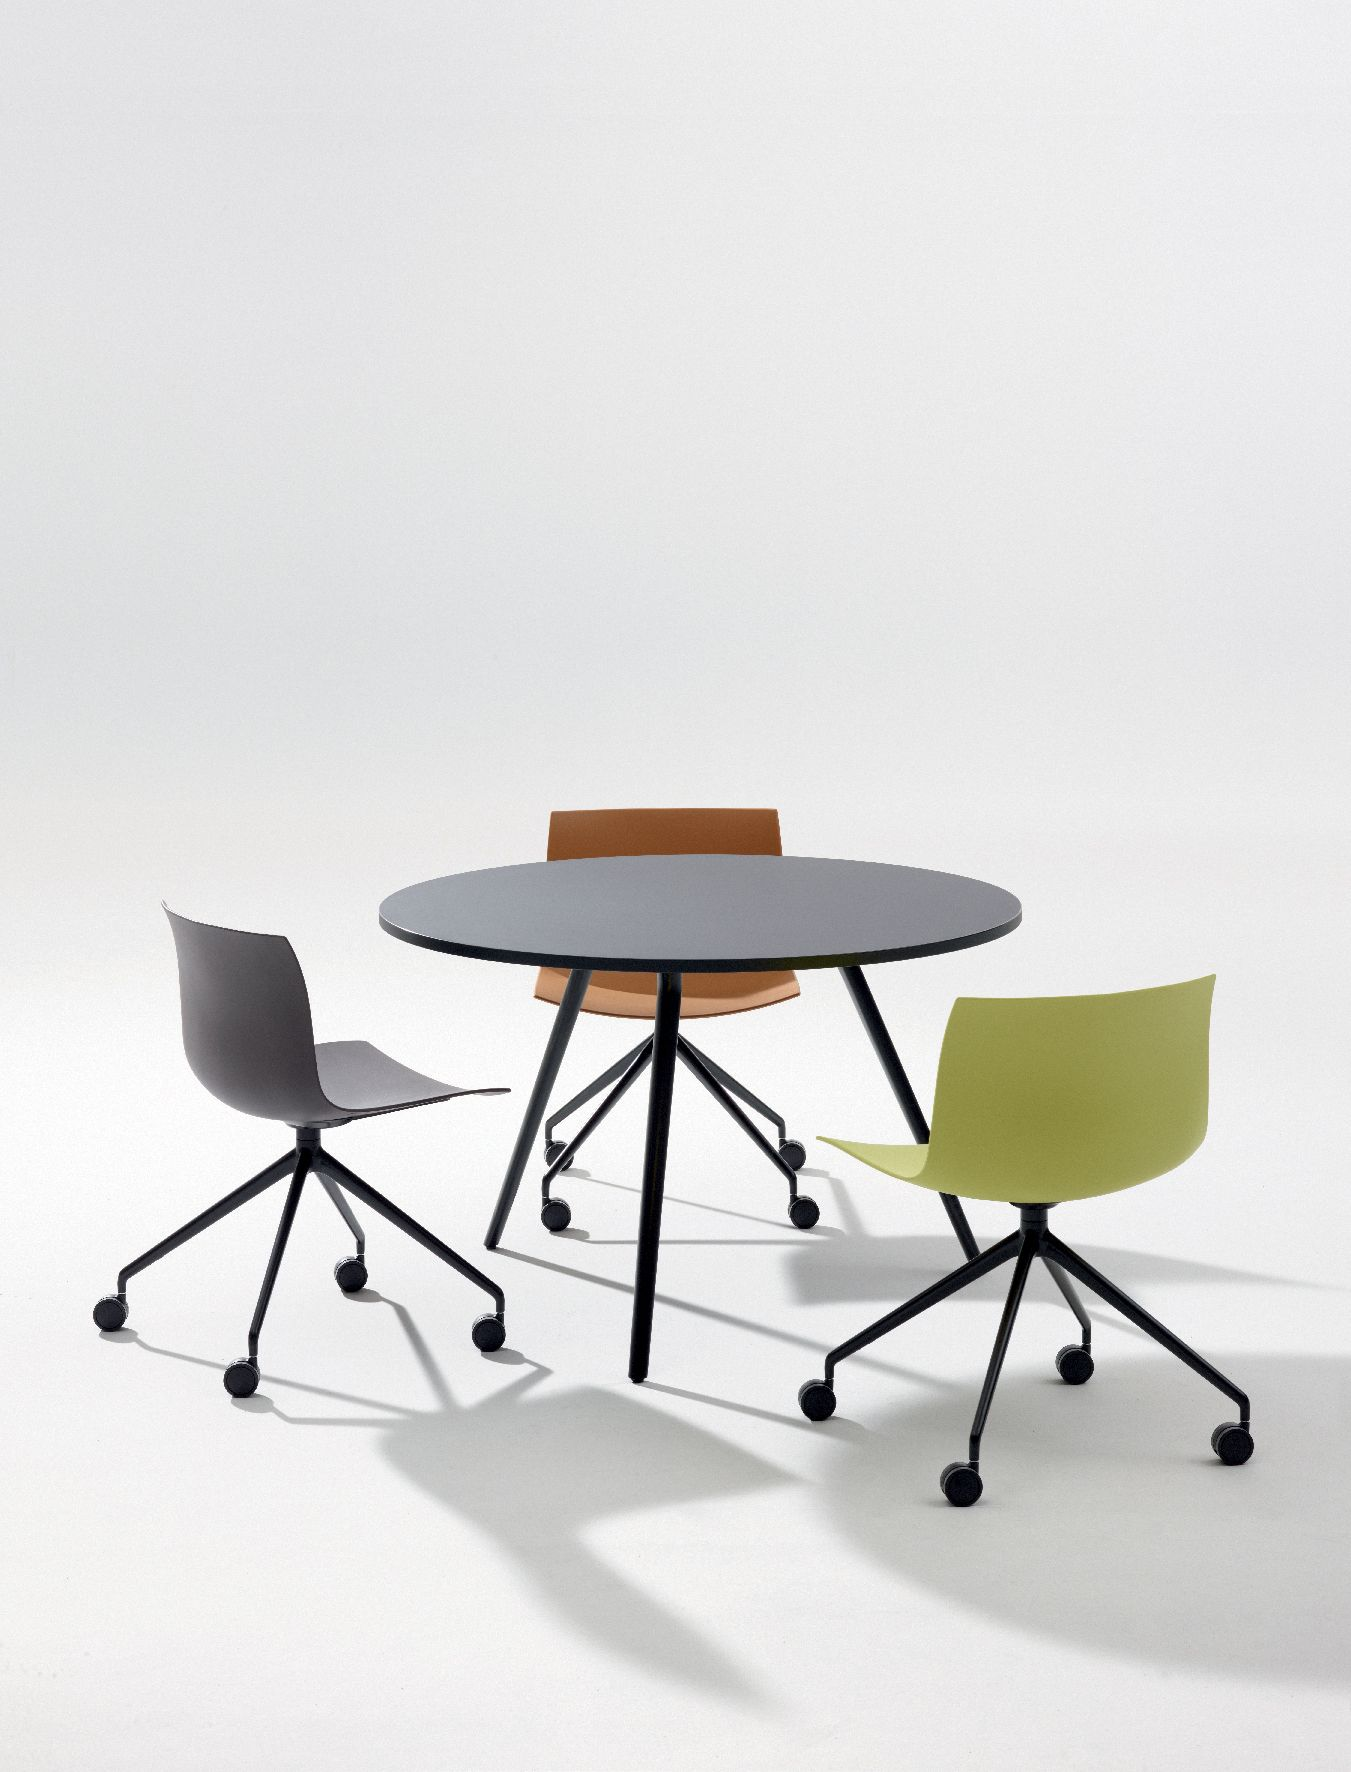 elegant, dynamic table and seating systems for individual or